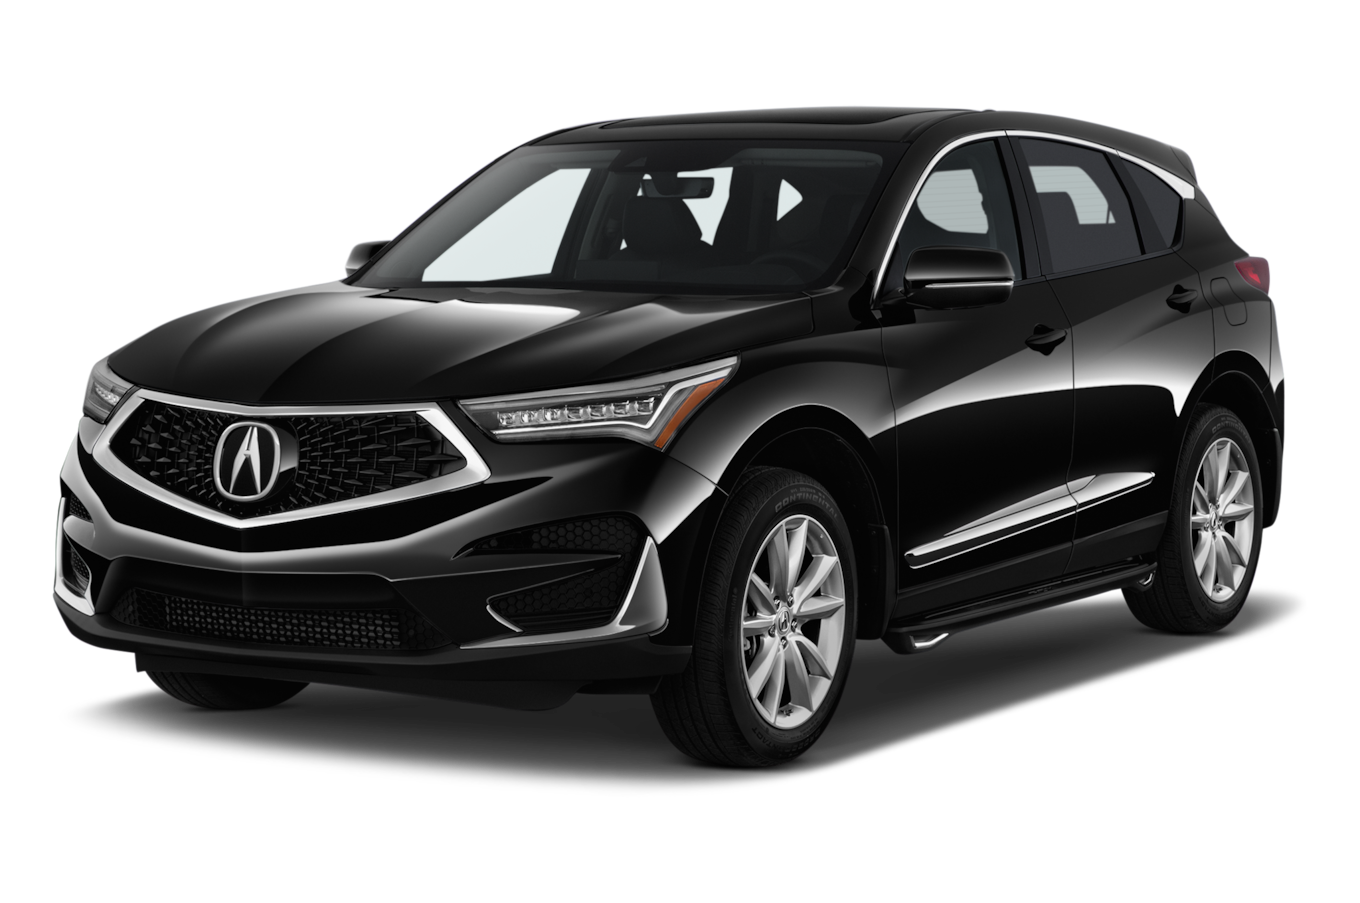 66 All New 2019 Honda Acura 2 Photos